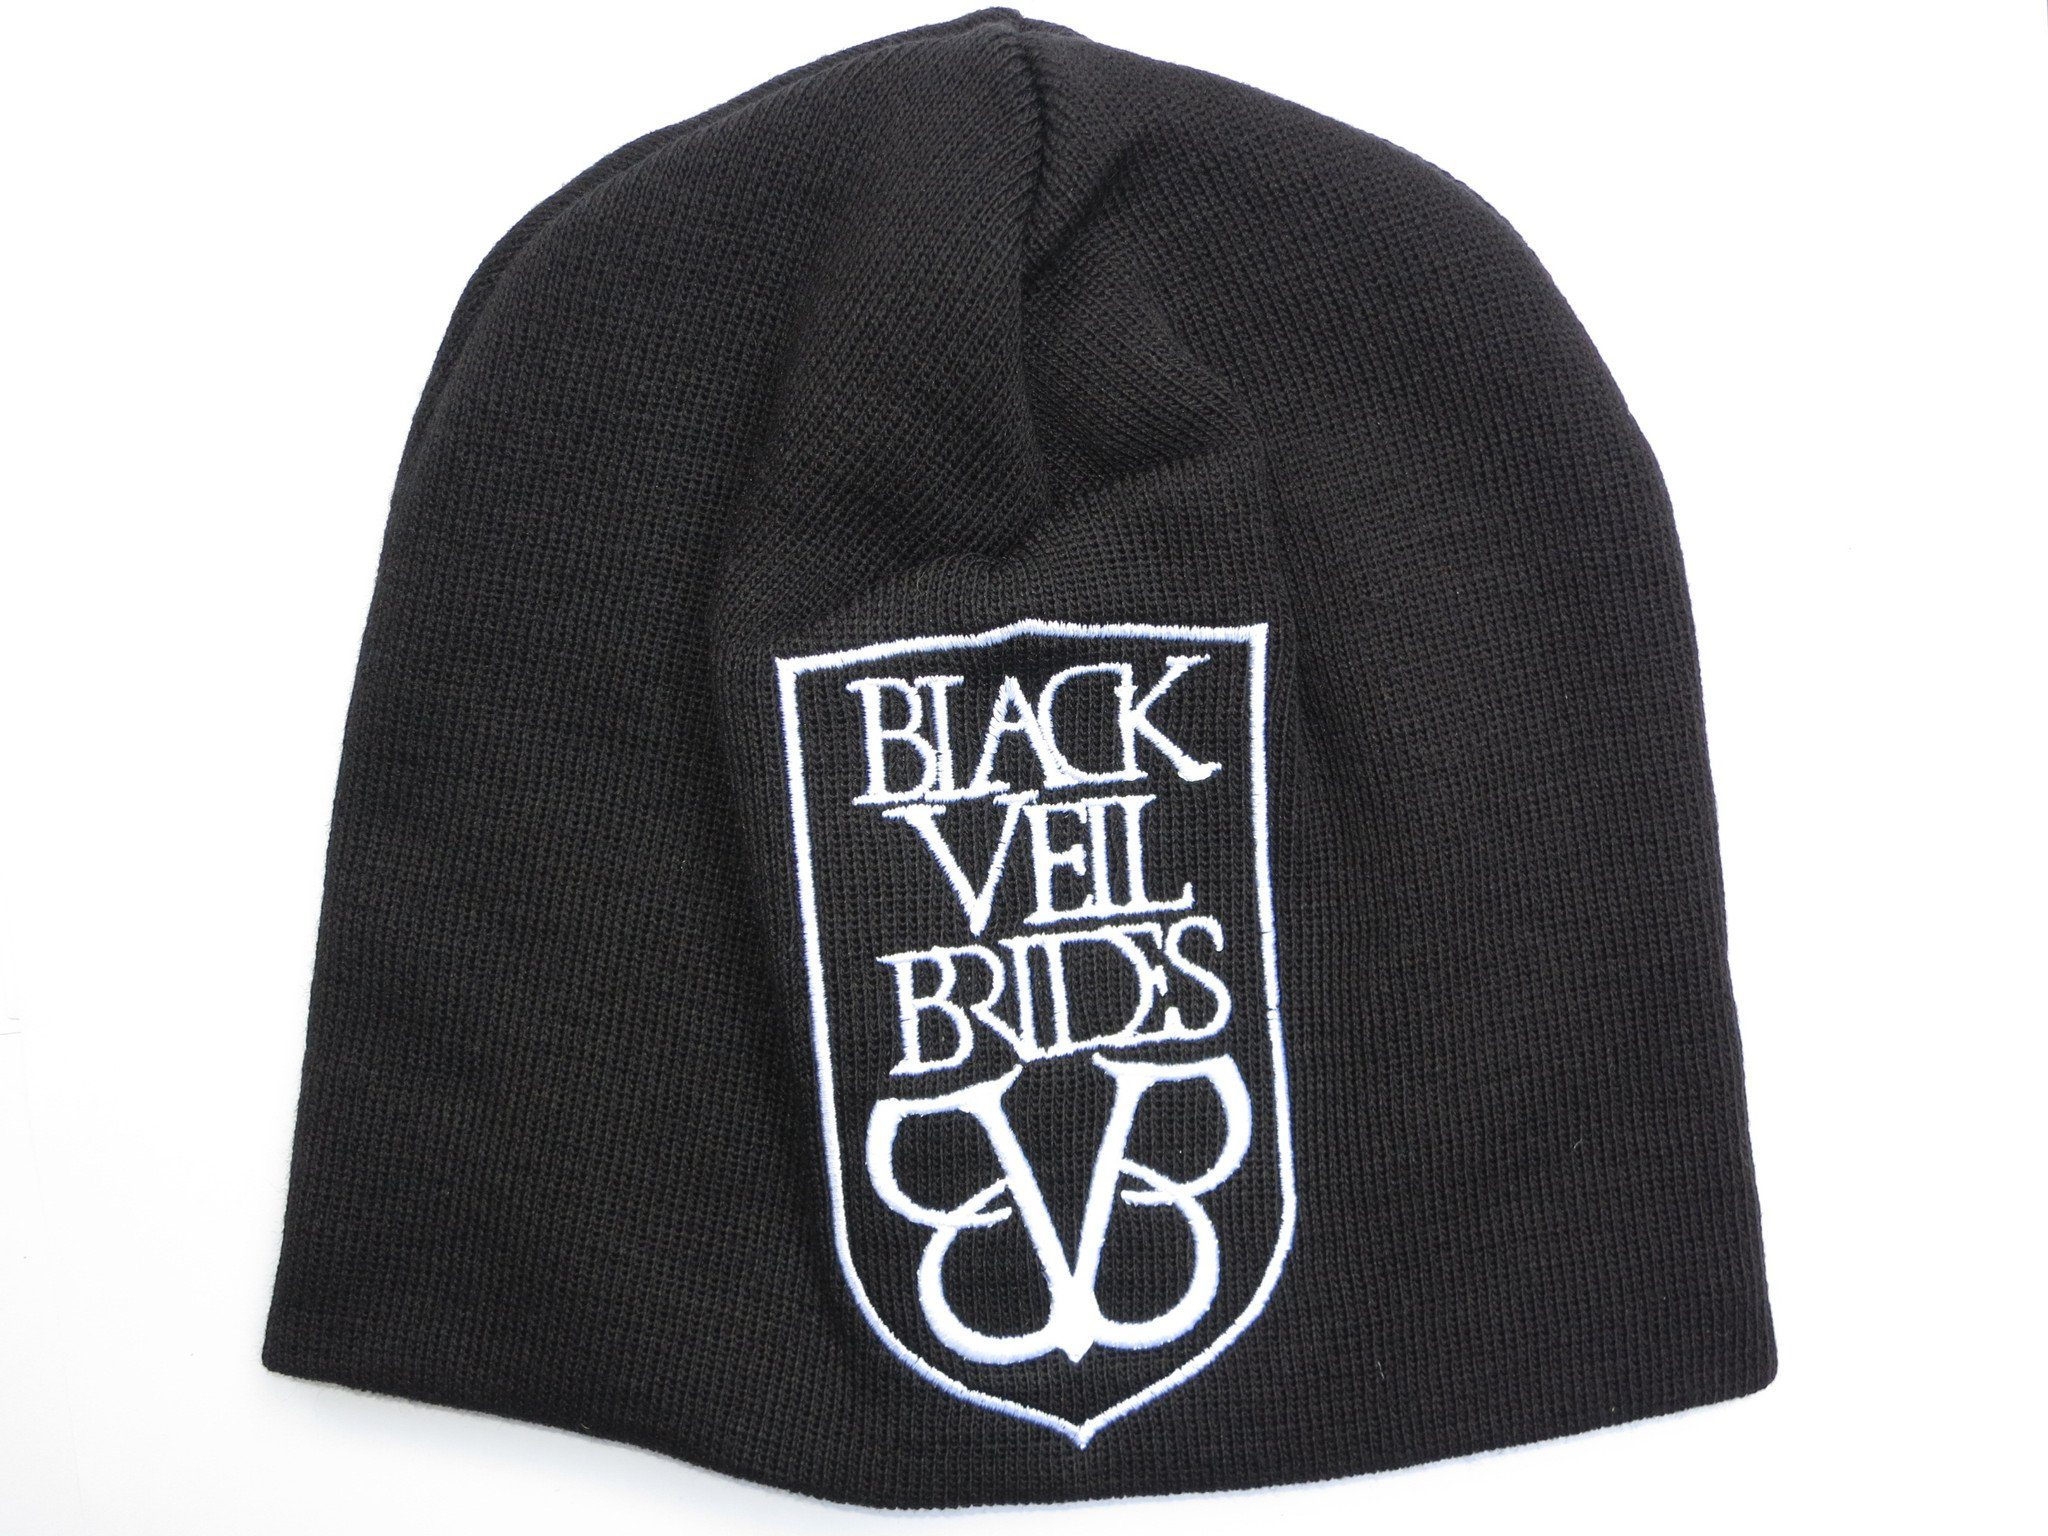 BLACK VEIL BRIDES Acrylic Wool Beanie Hat BNWT - A Patch E Store